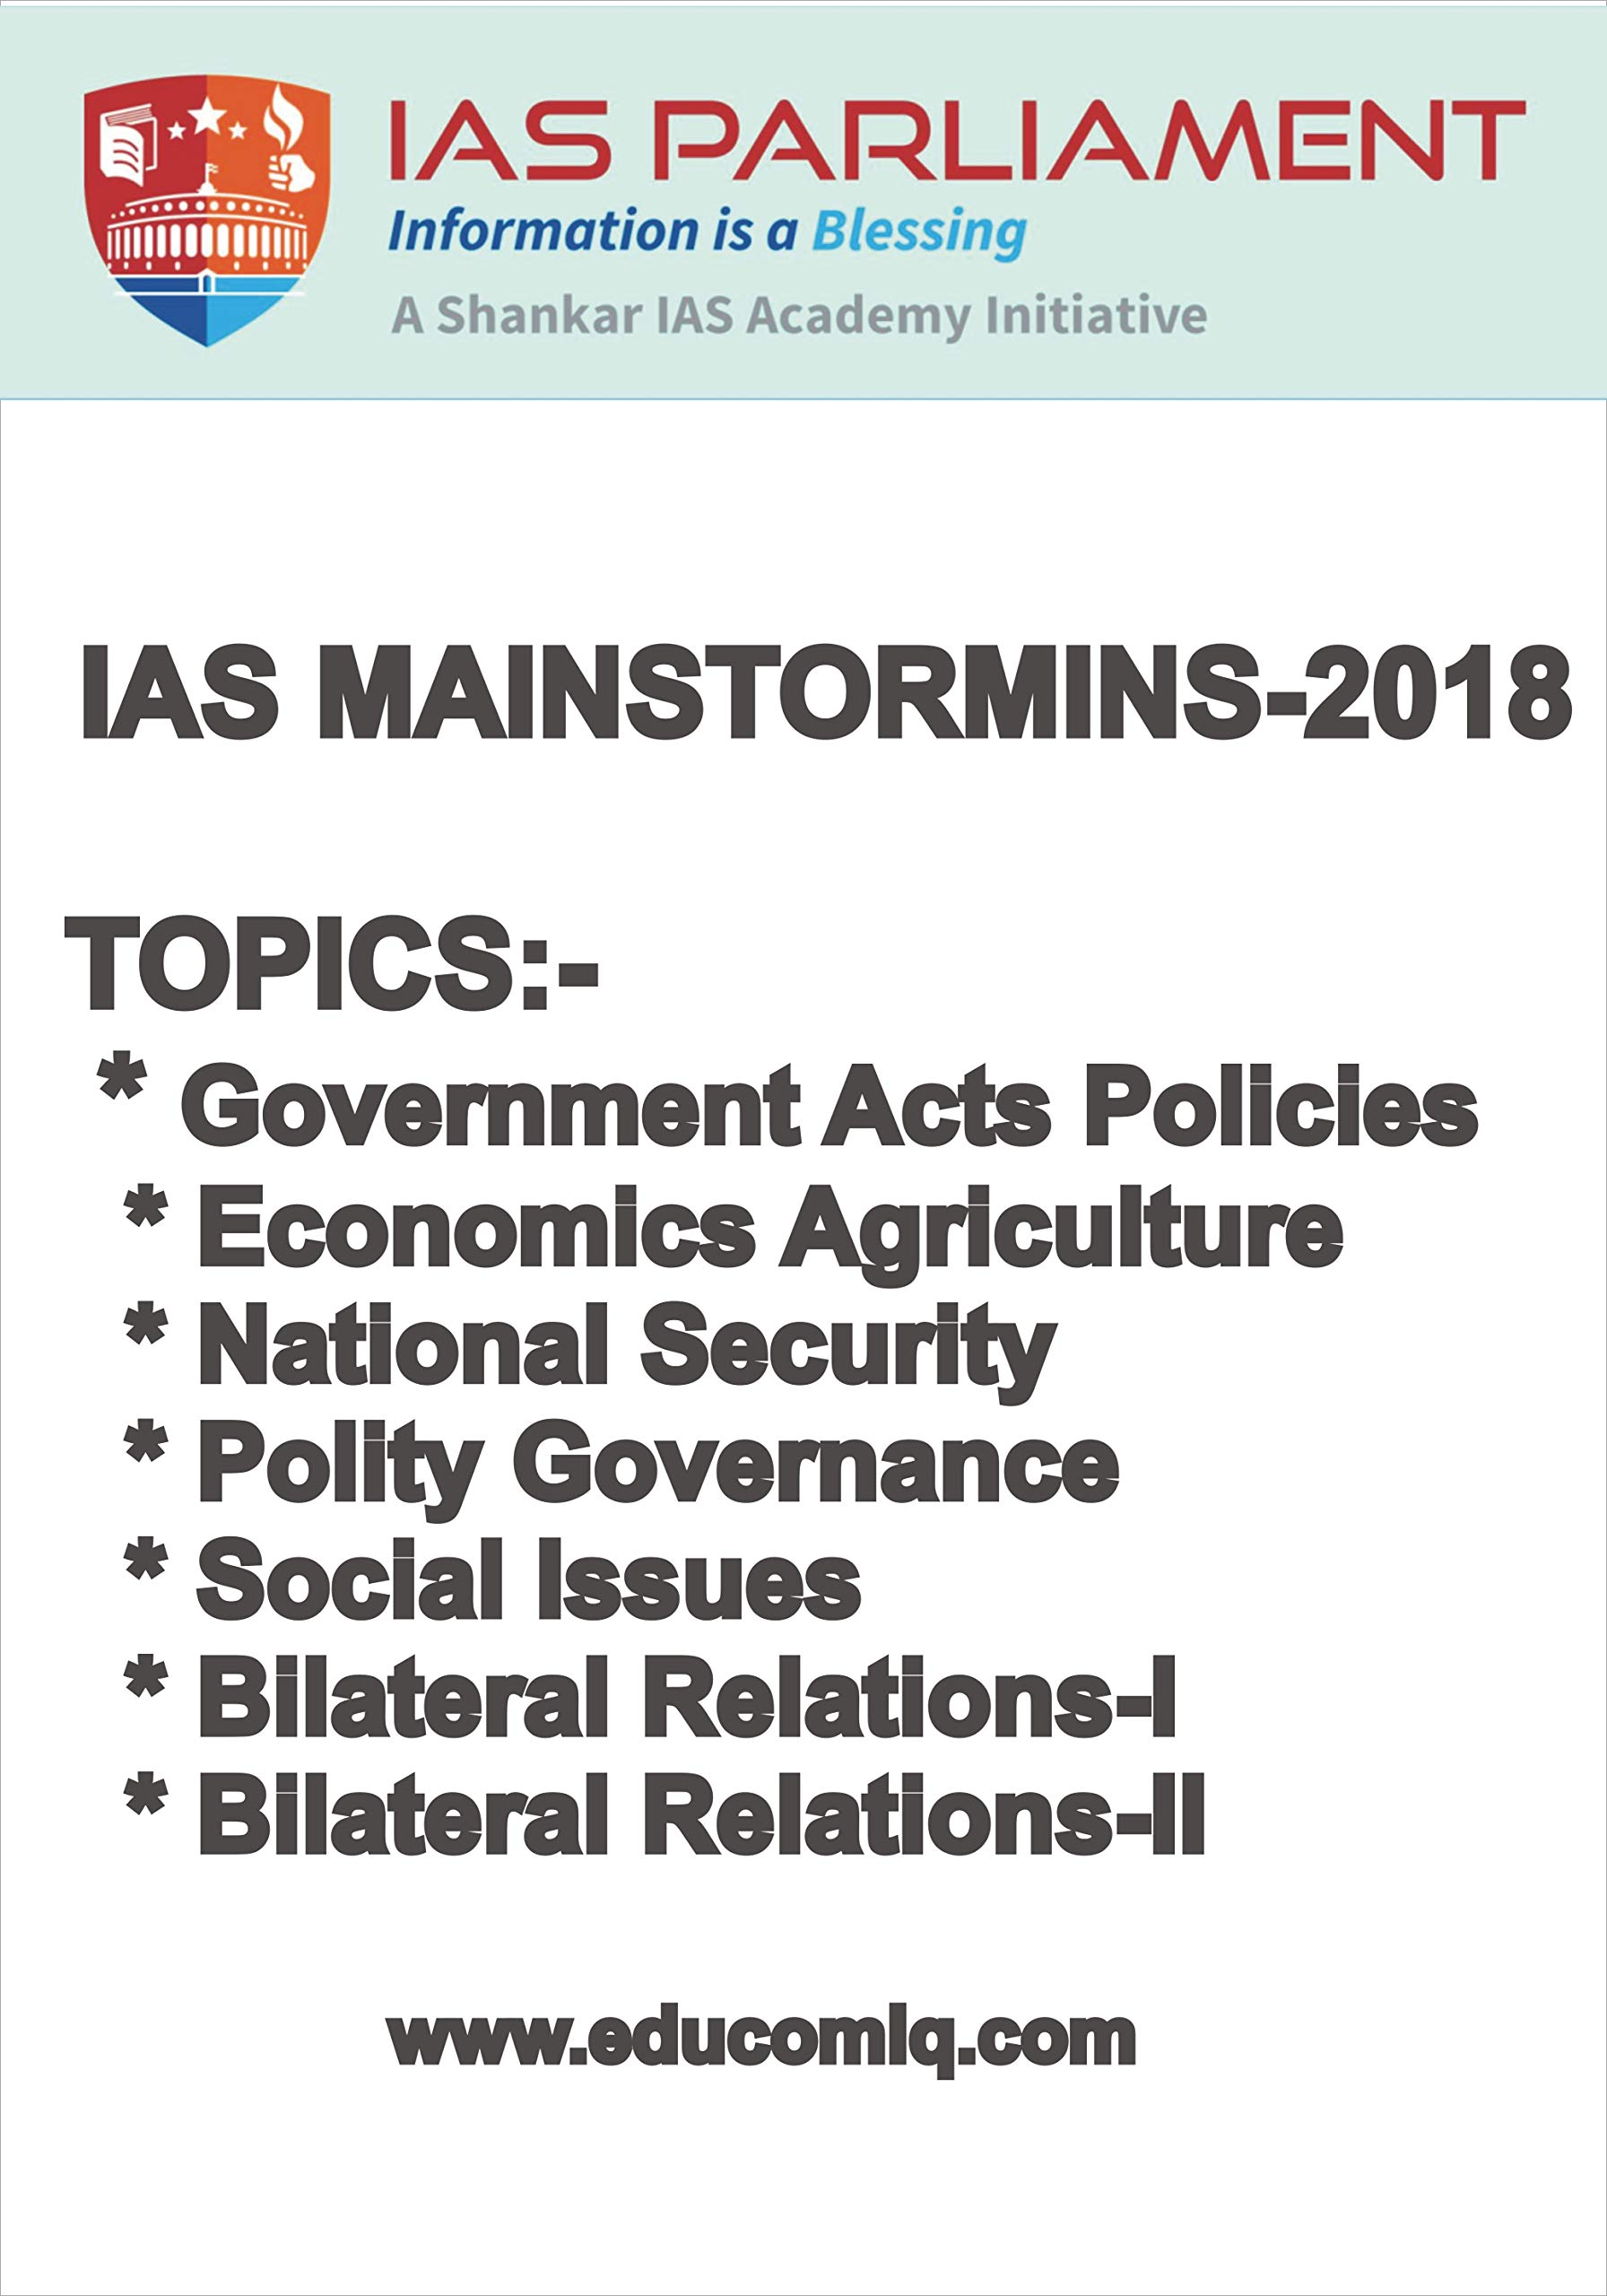 Amazon in: Buy GS Mainstorming-2018 Topics [IAS Parliament from